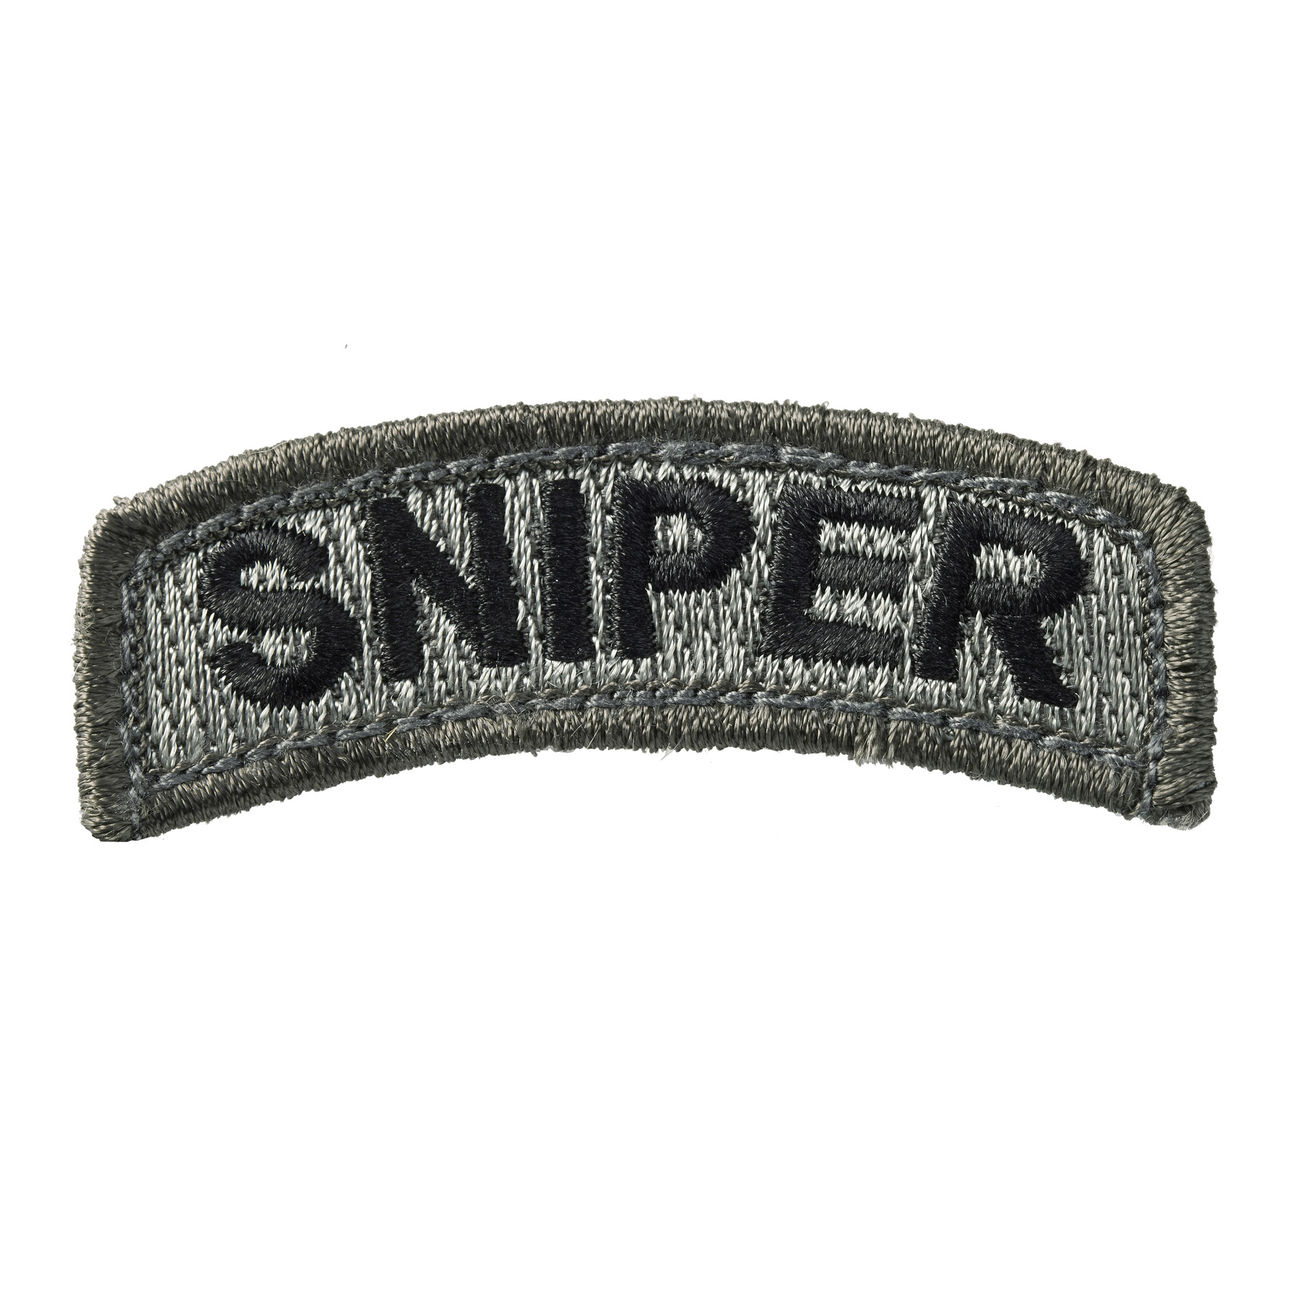 Mil-Spec Monkey Patch Sniper Tab ACU dark 0